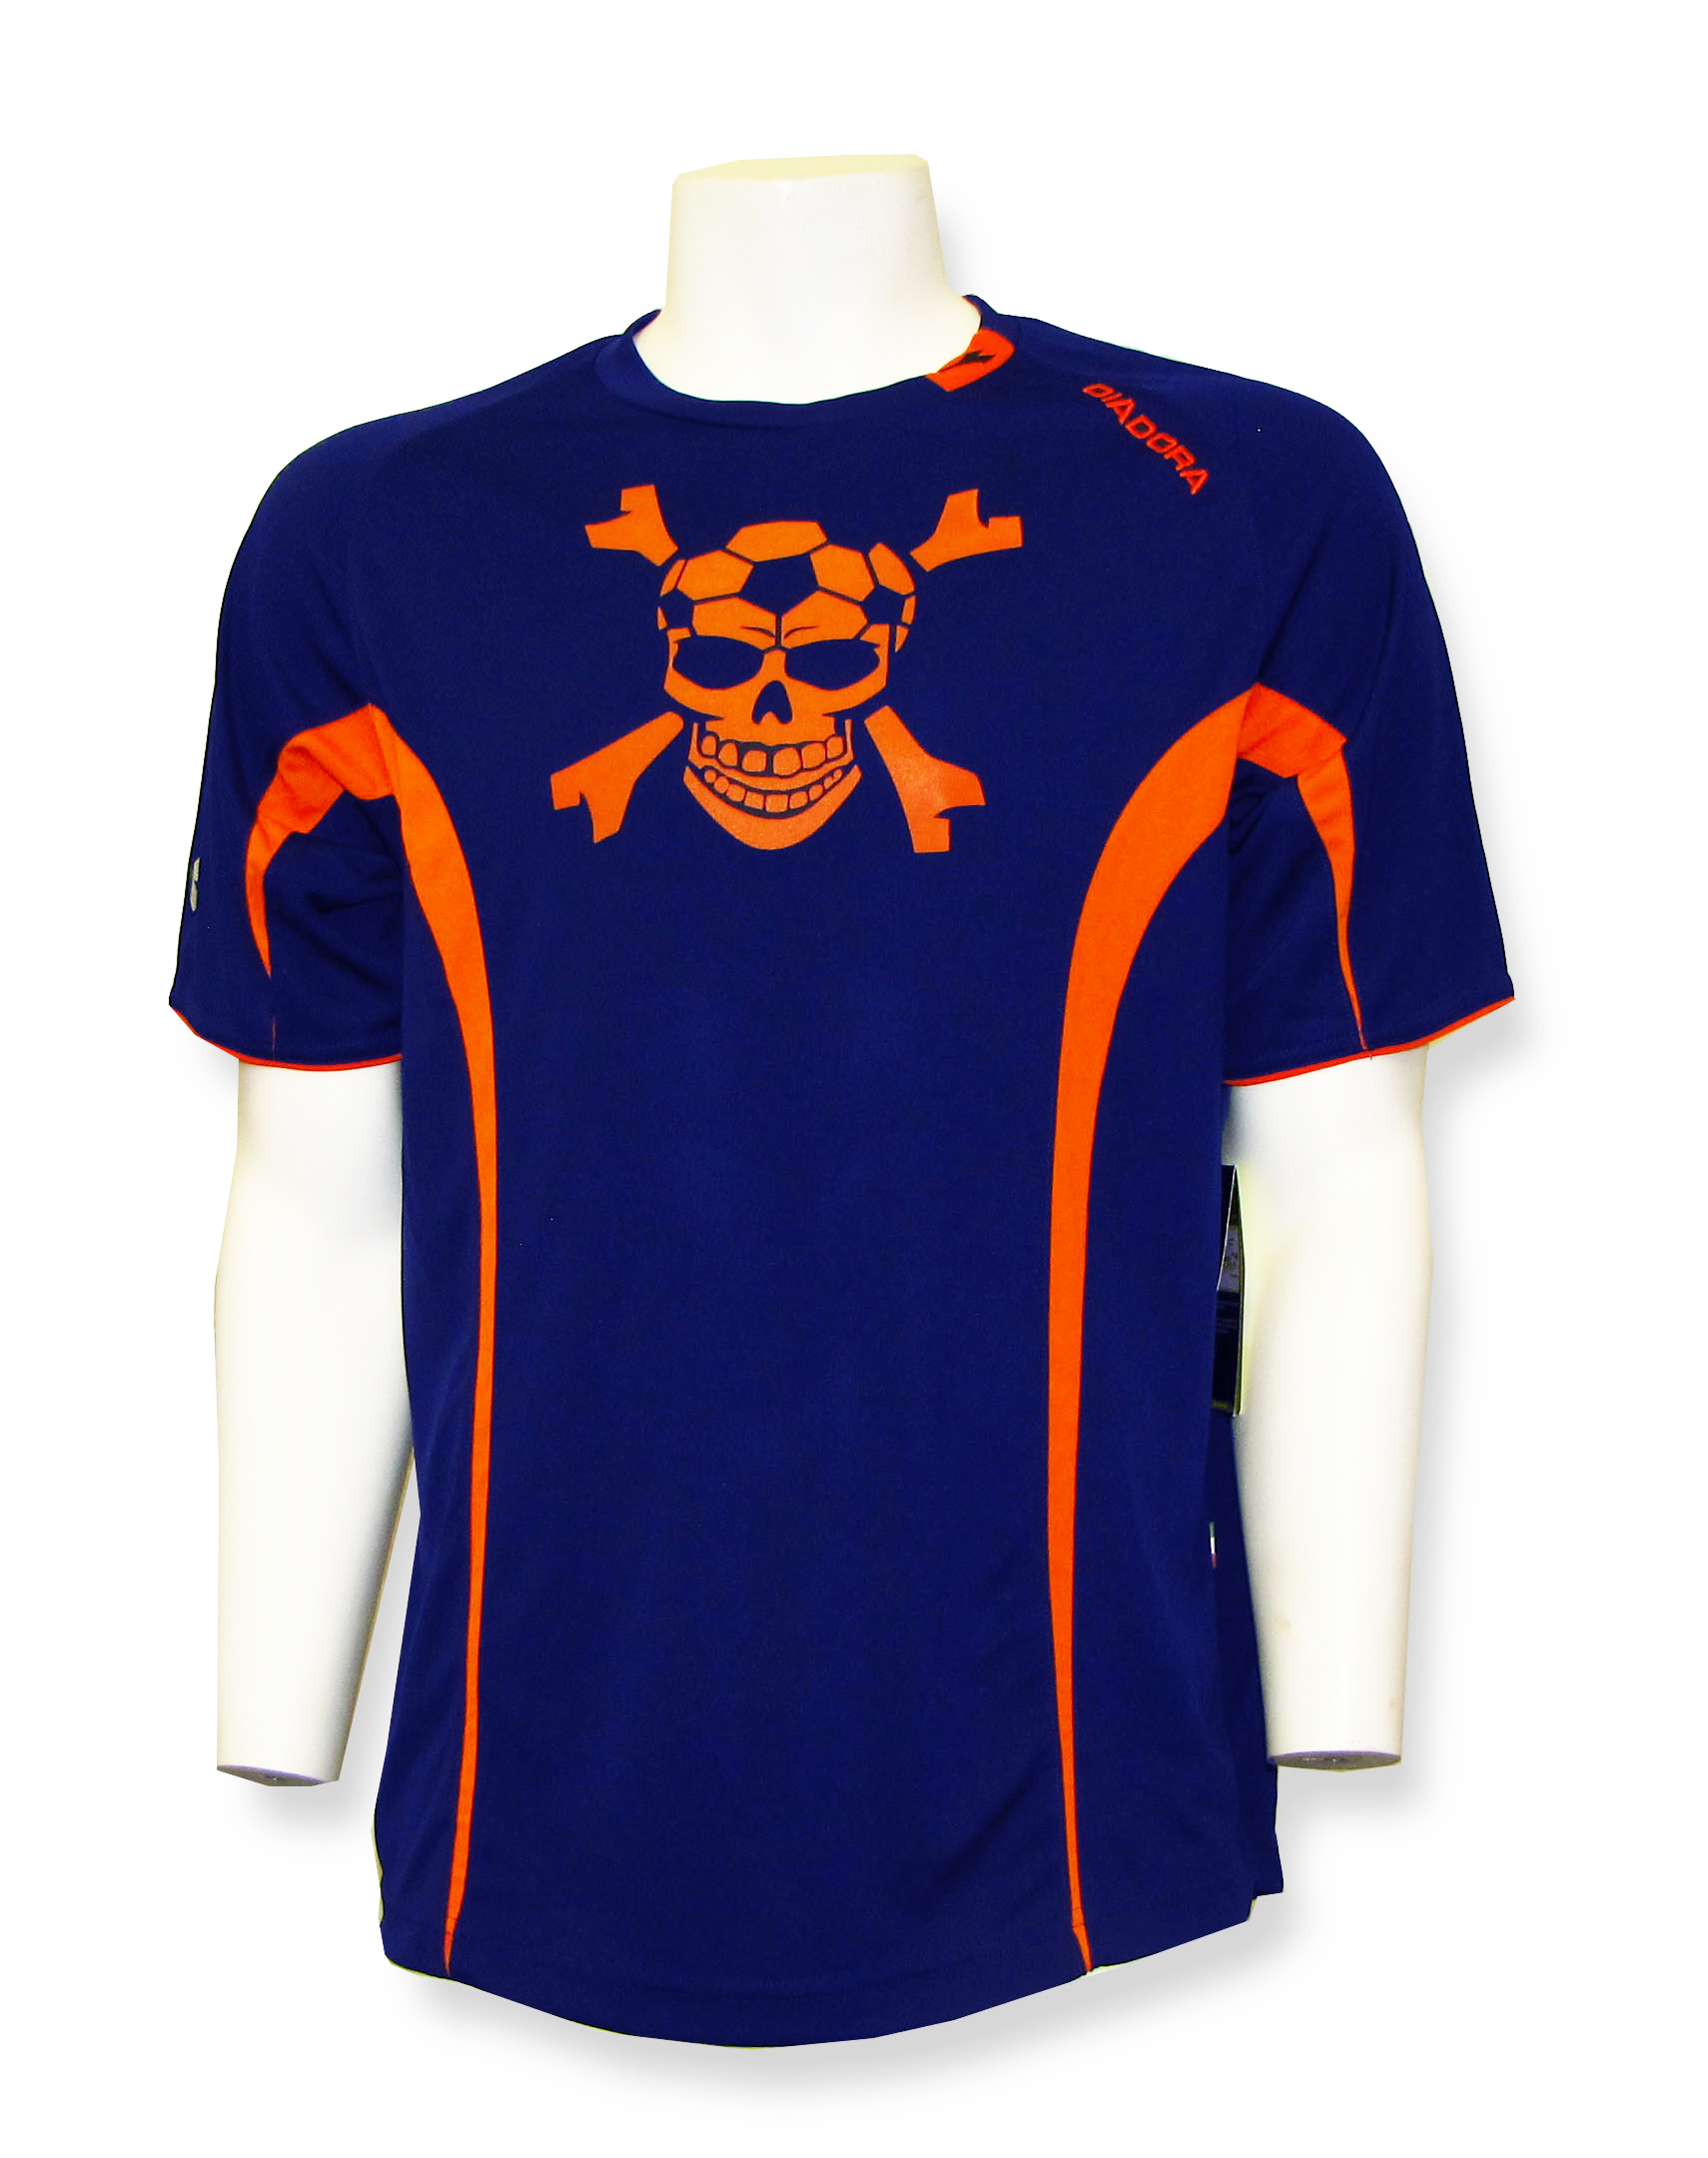 Soccer Skull keeper jersey by Diadora offer by Code Four Athletics